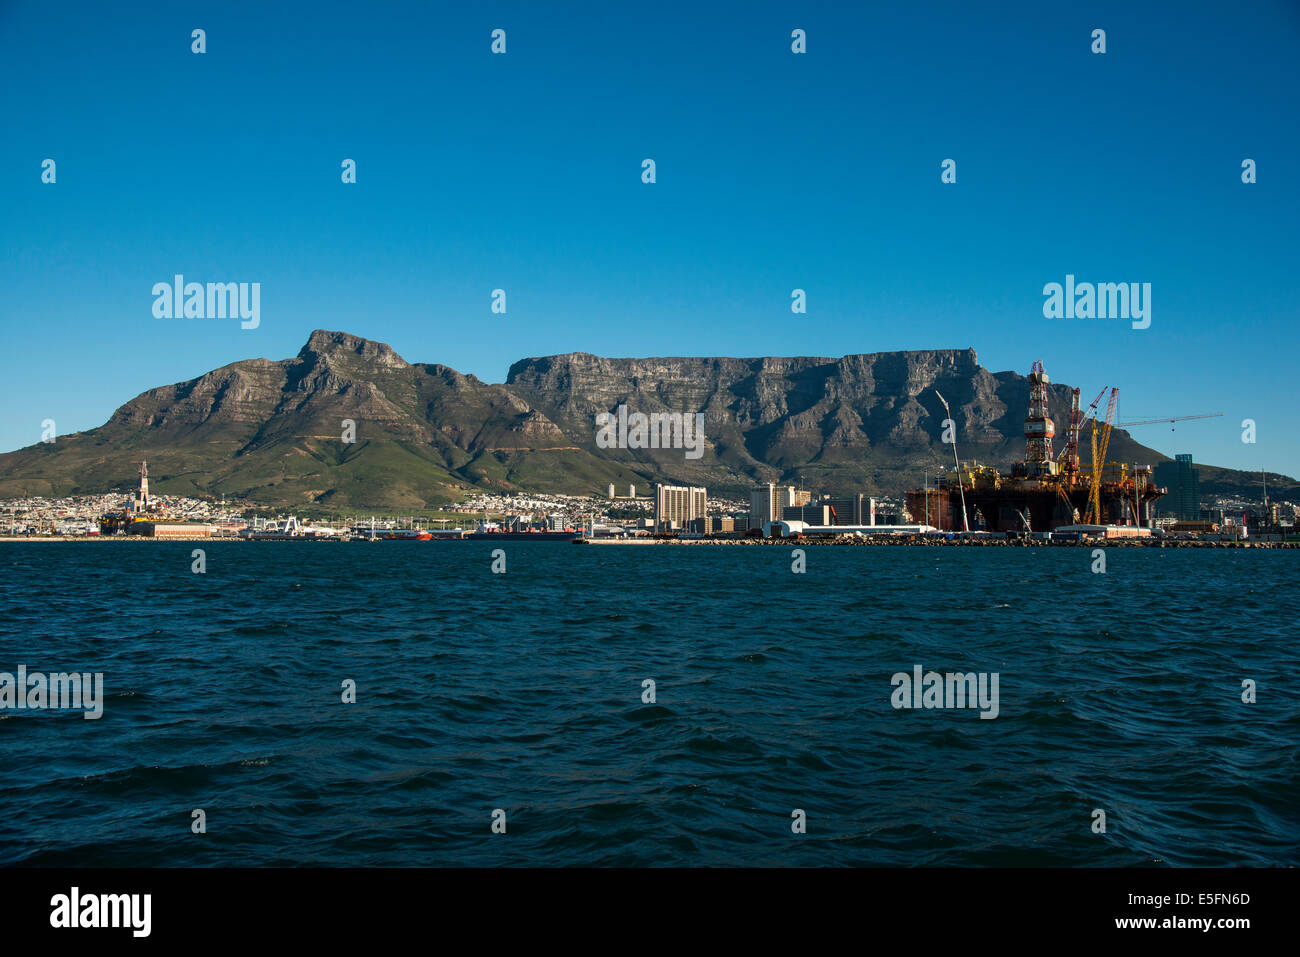 La montagne de la table avec Cape Town, Western Cape, Afrique du Sud Photo Stock